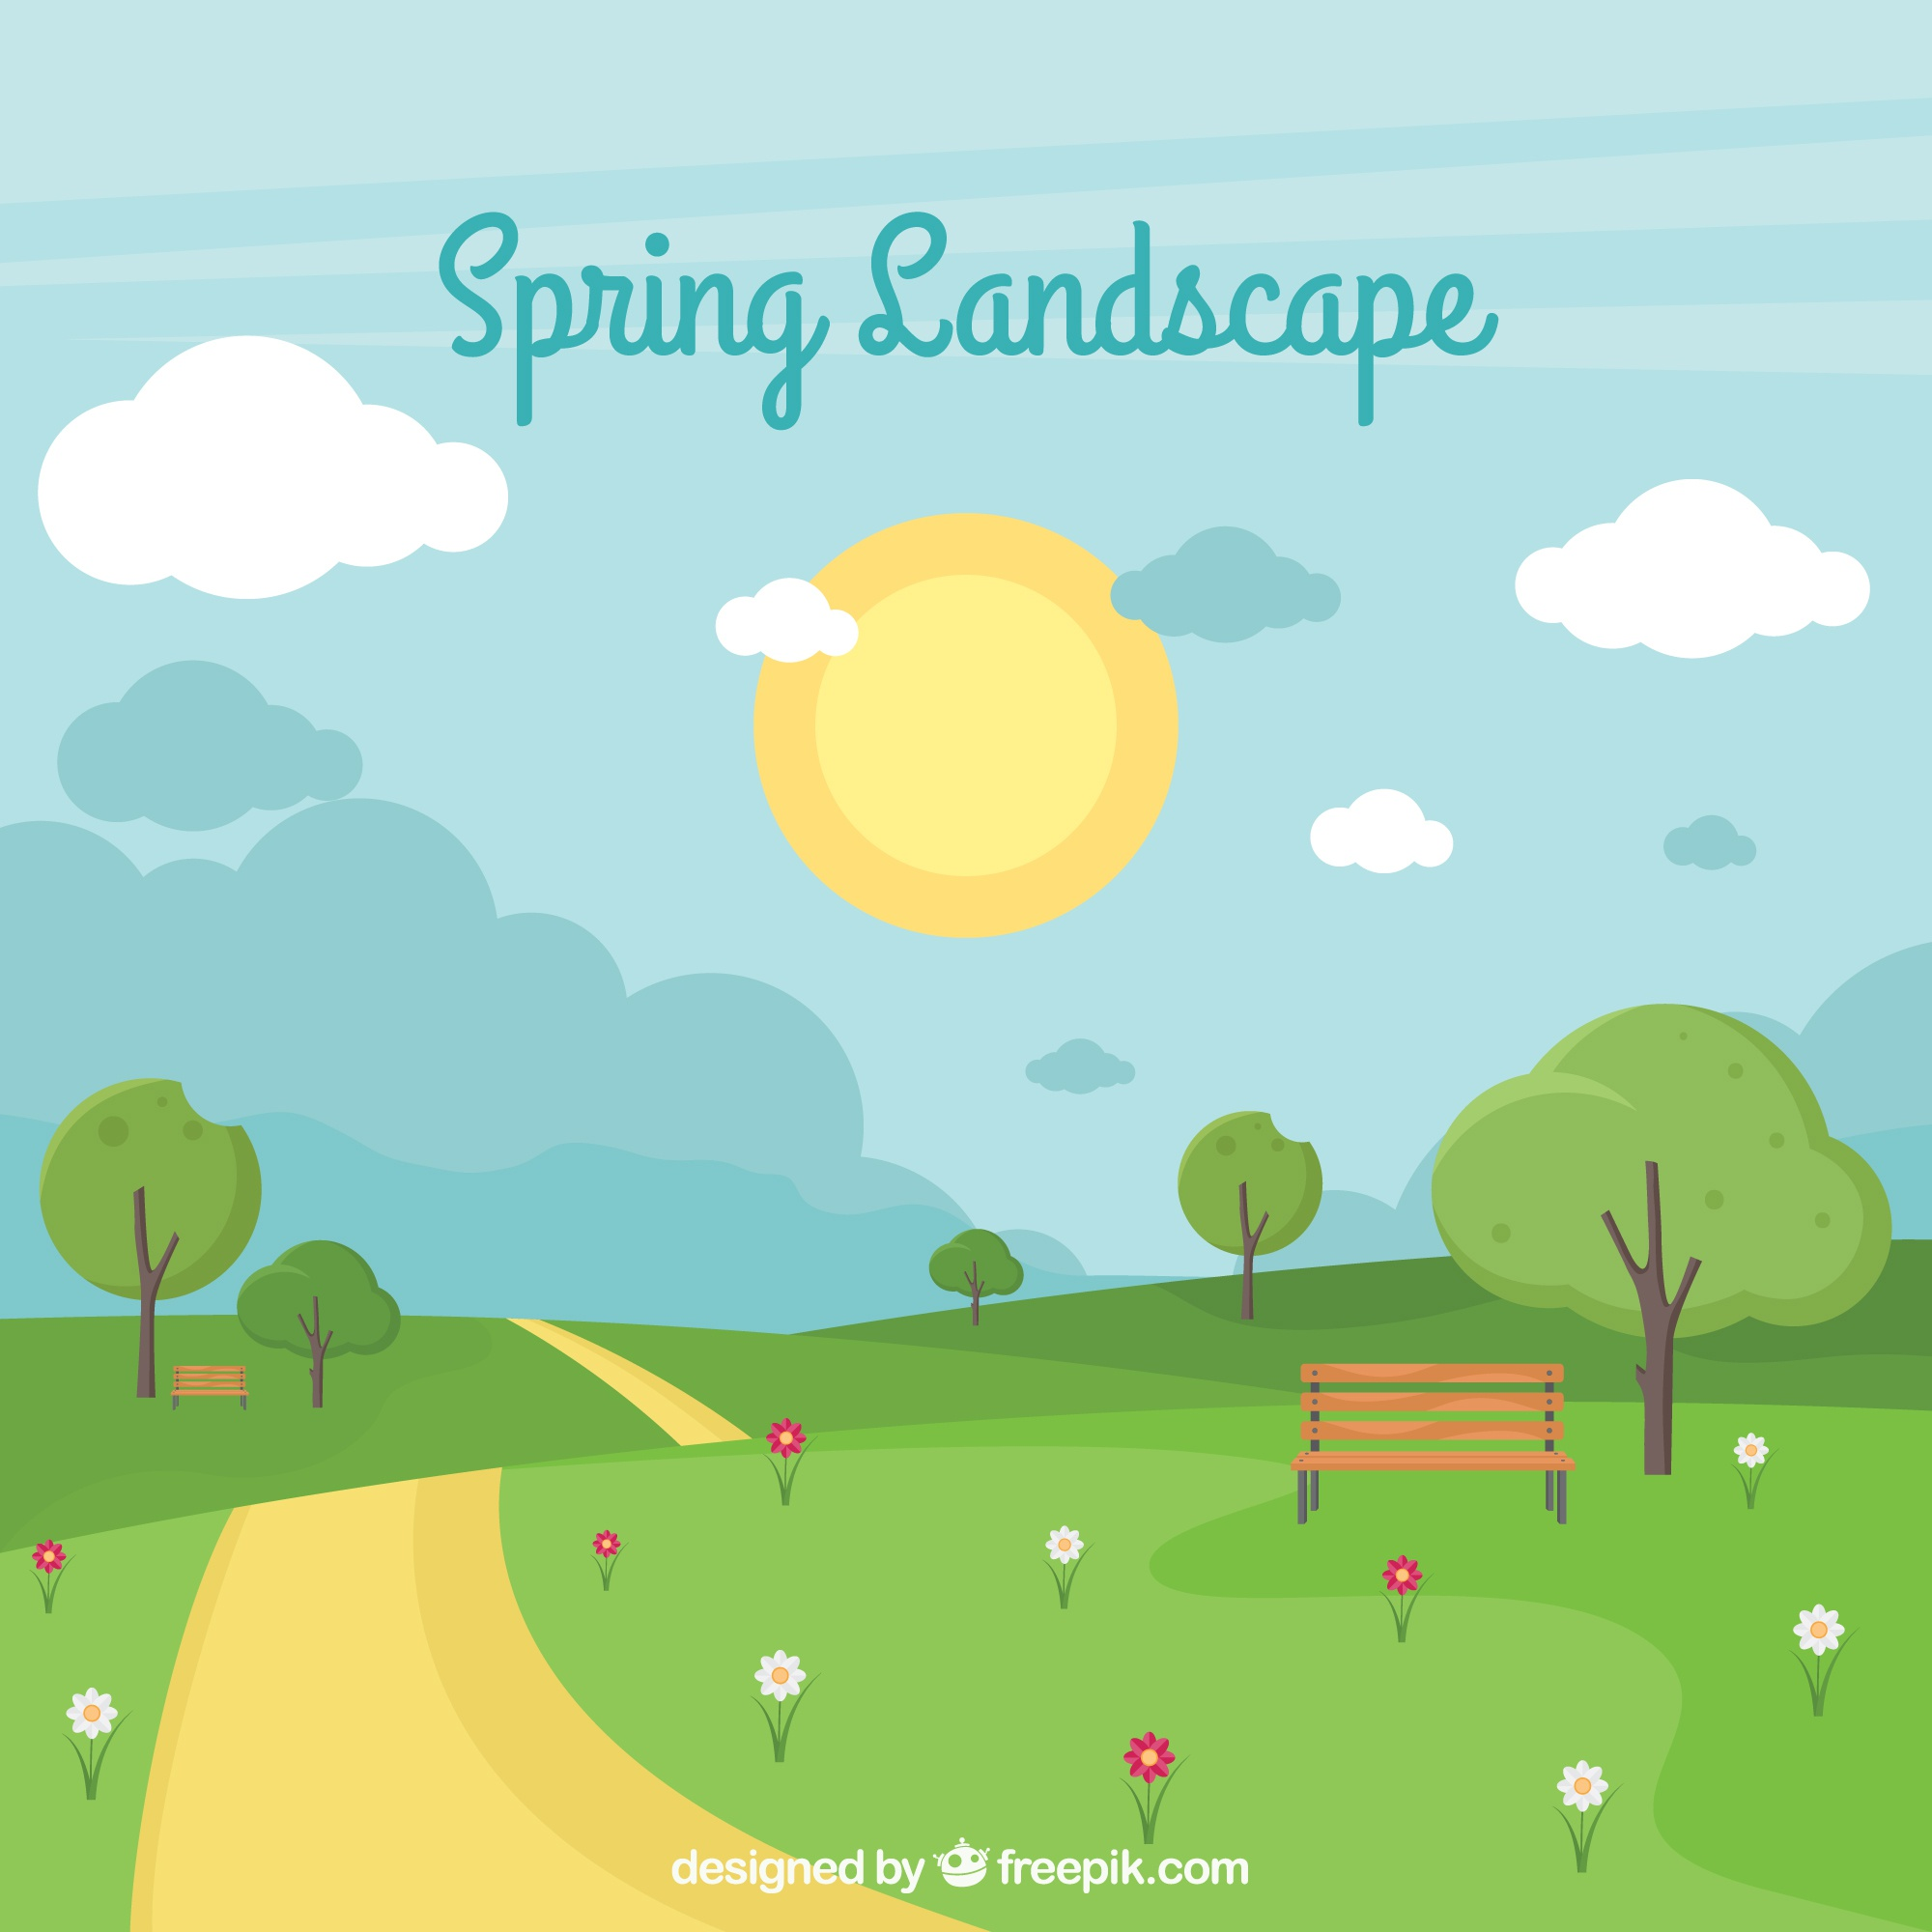 Spring landscape background in flat style